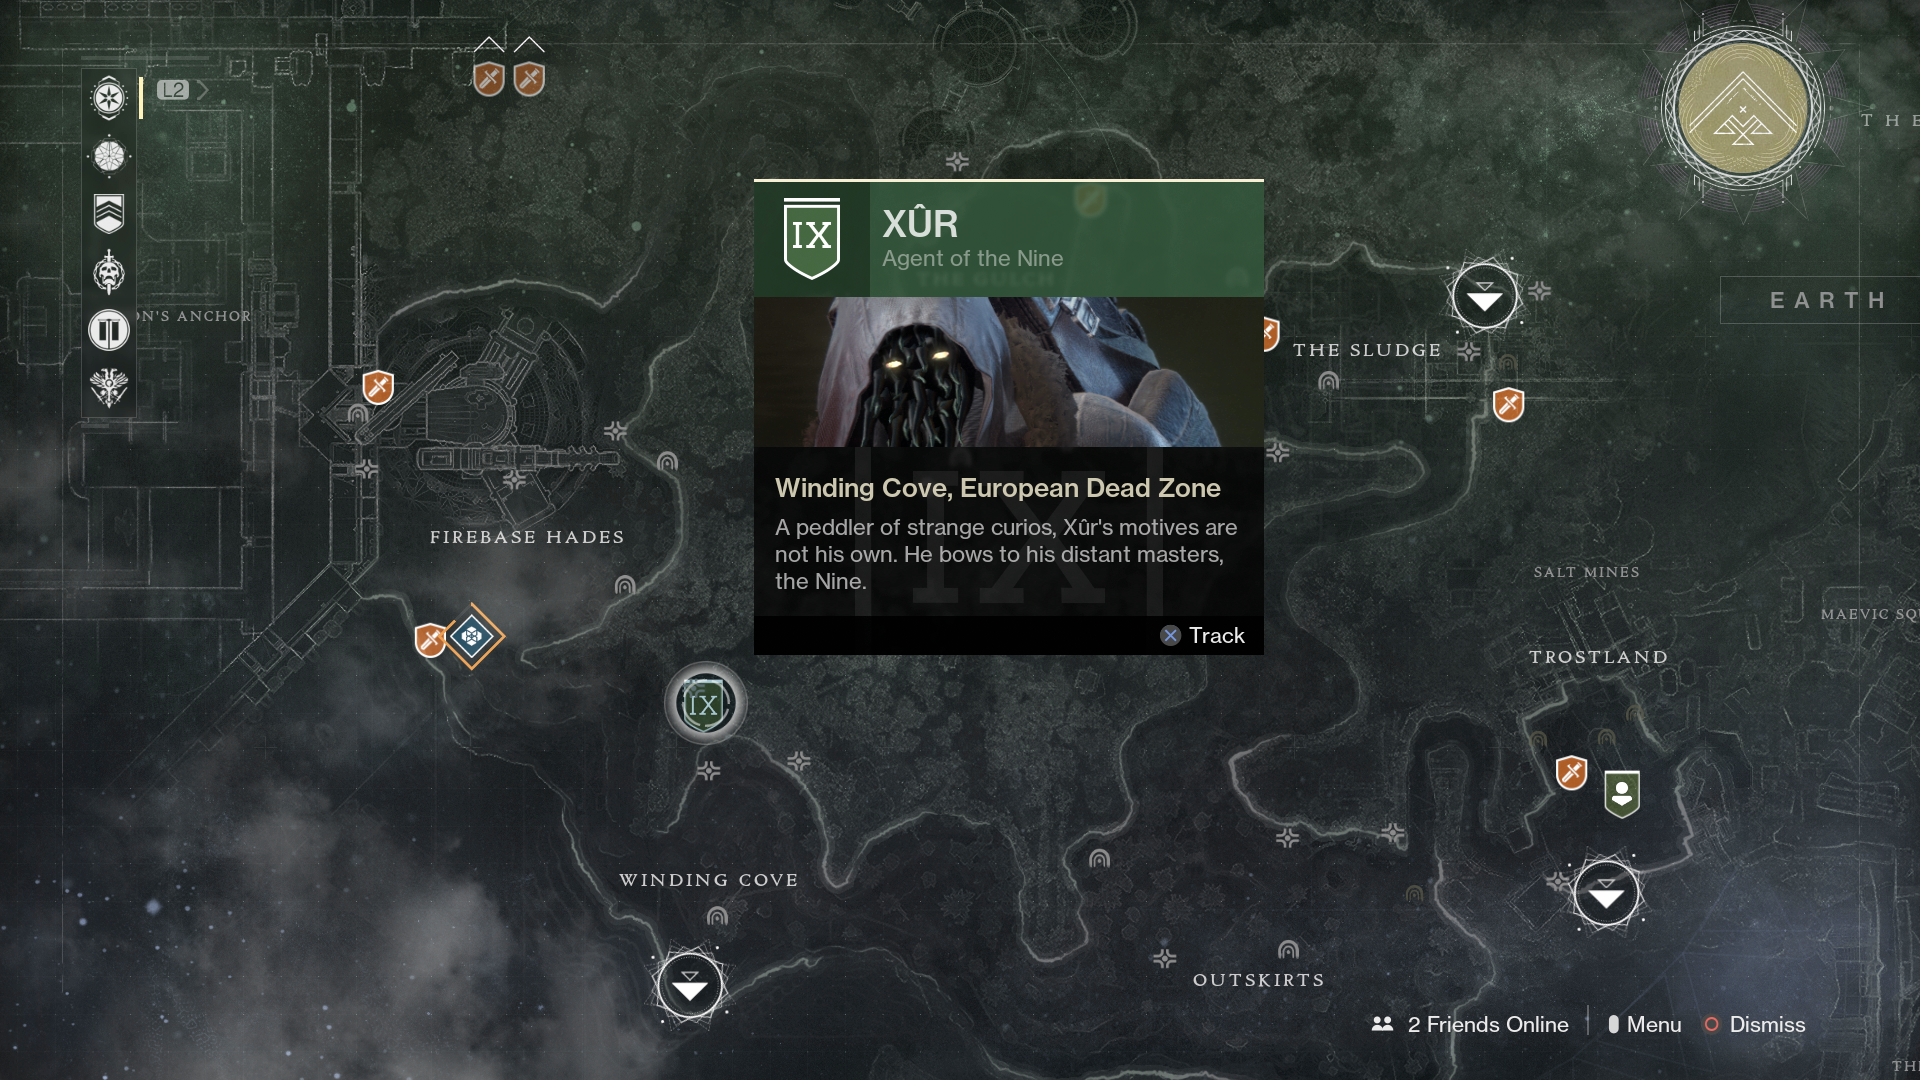 DESTINY 2 NEWS | Xur's Arrival, Faction Rally Event ...